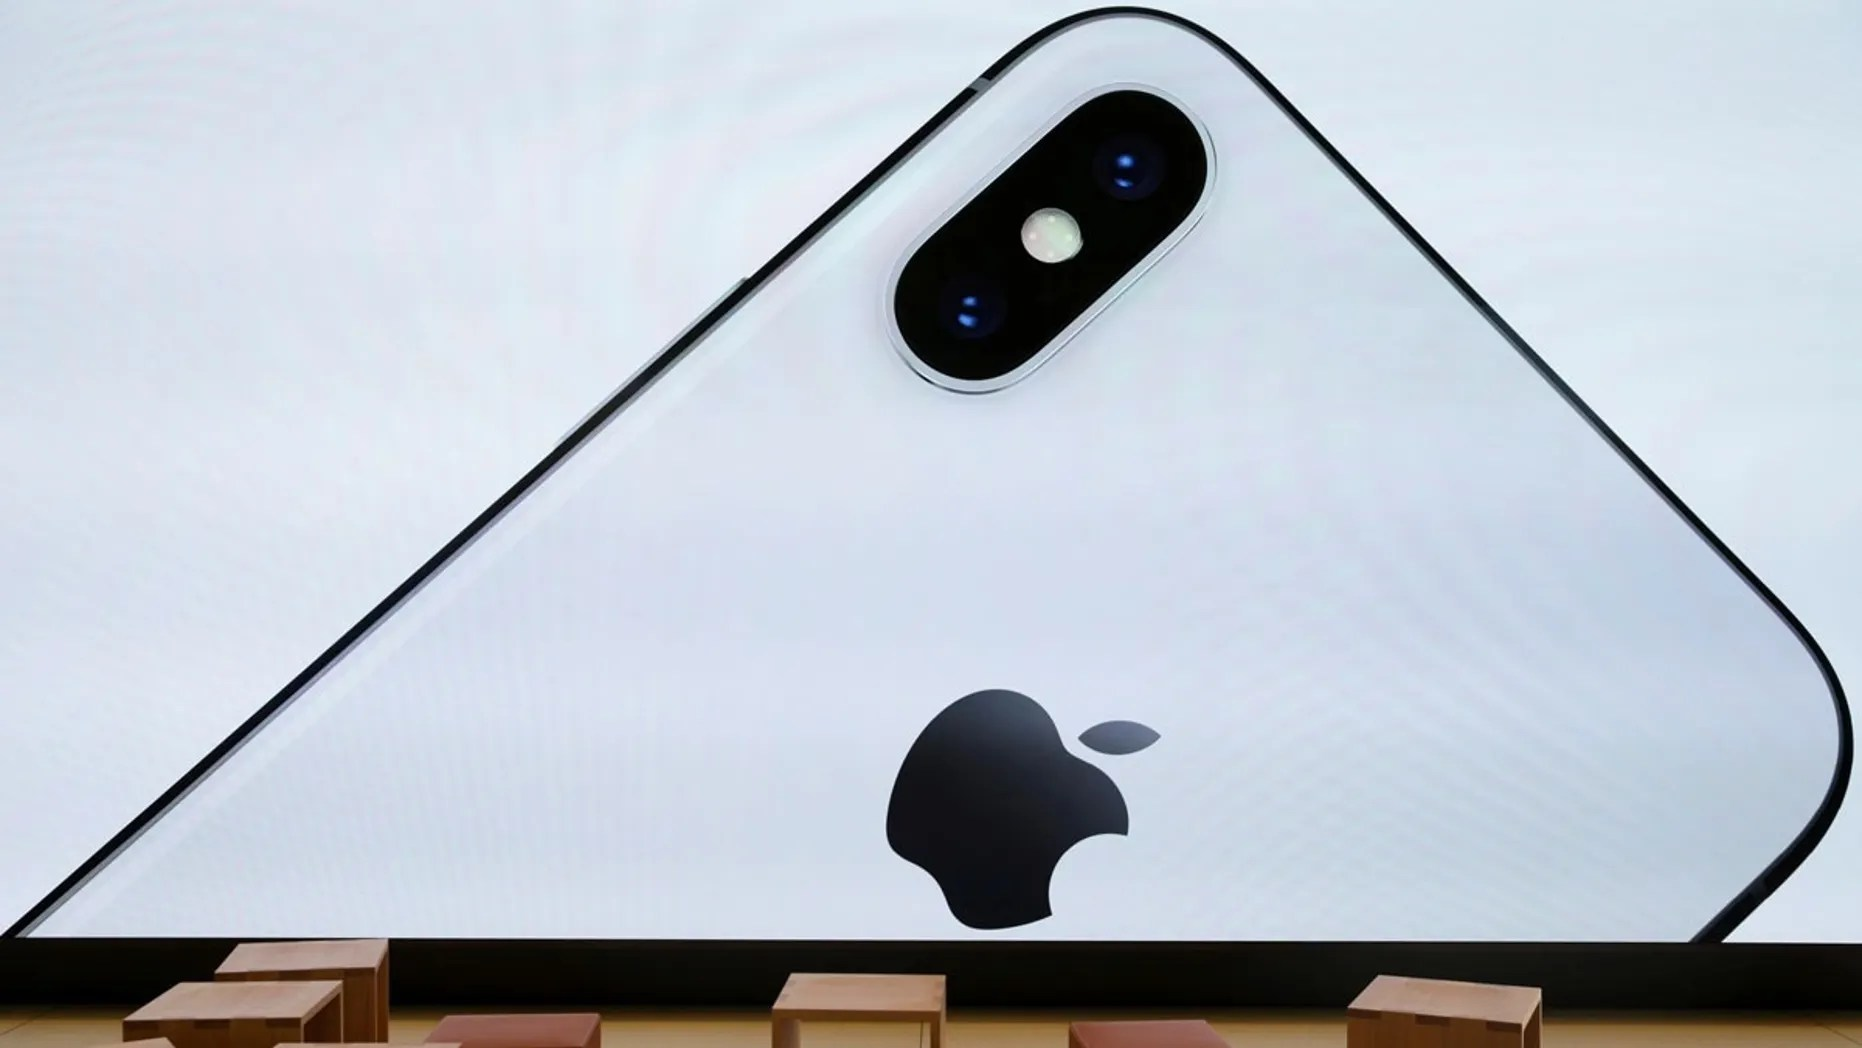 File photo: An iPhone X is seen on a large video screen in the new Apple Visitor Center in Cupertino, California, U.S., November 17, 2017. REUTERS/Elijah Nouvelage